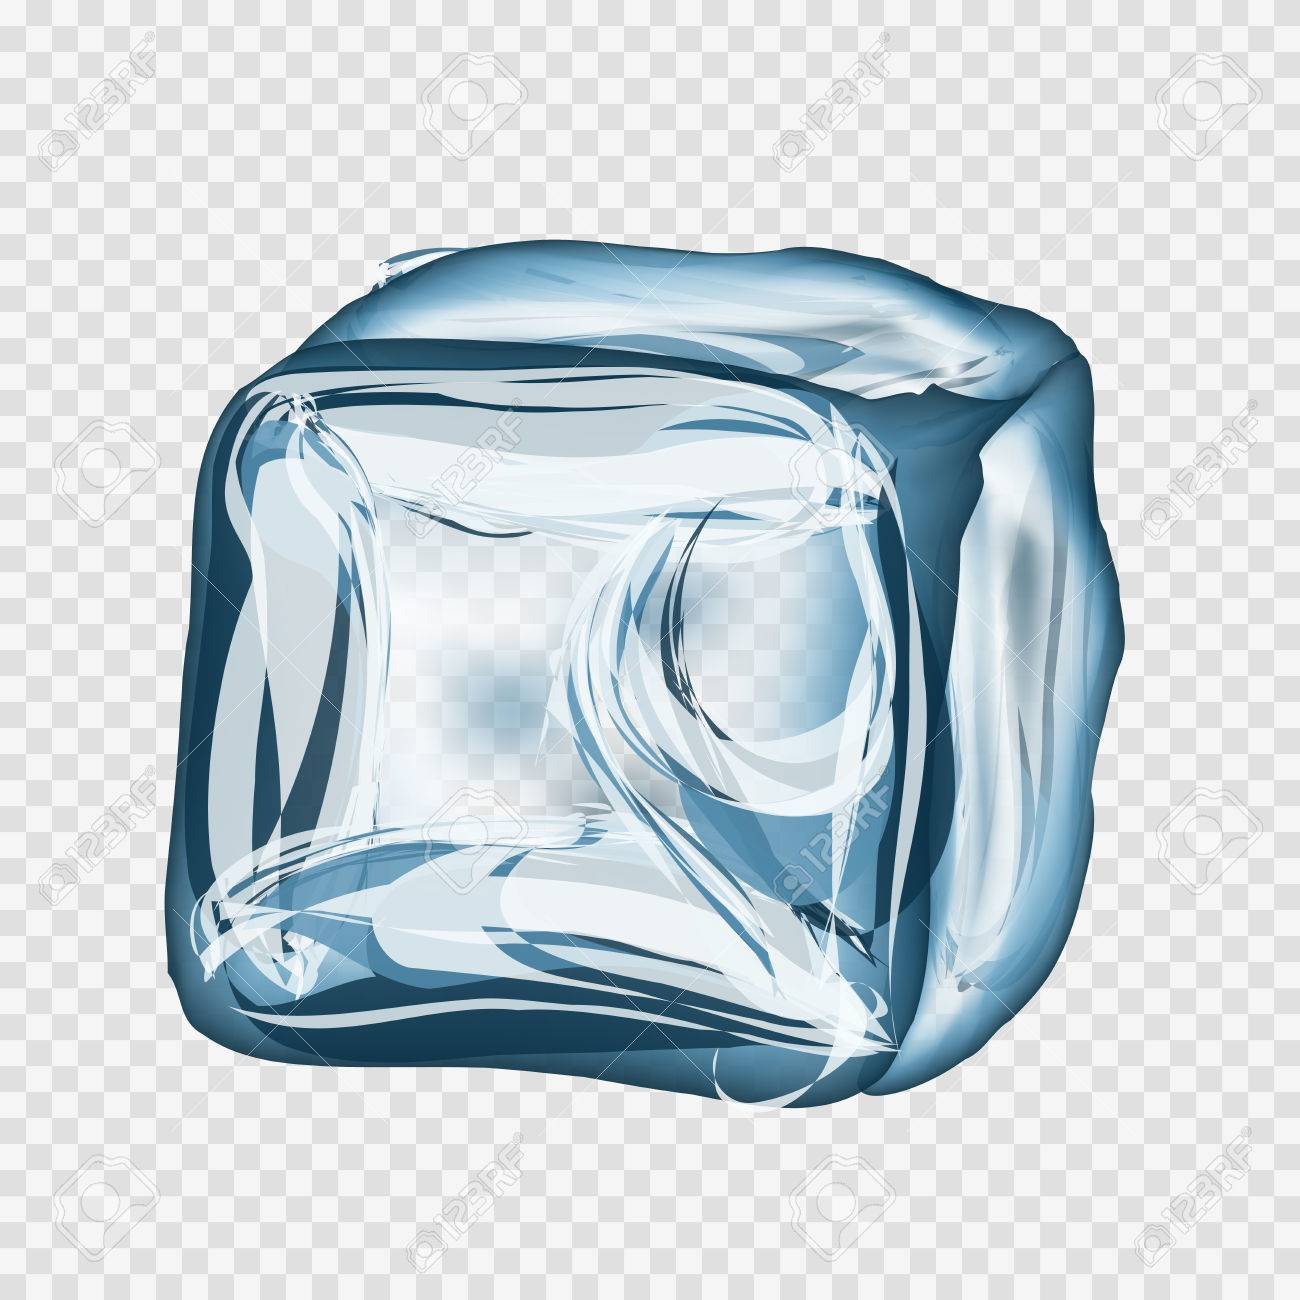 transparent ice cube in blue colors on light gray background royalty free cliparts vectors and stock illustration image 44565743 transparent ice cube in blue colors on light gray background